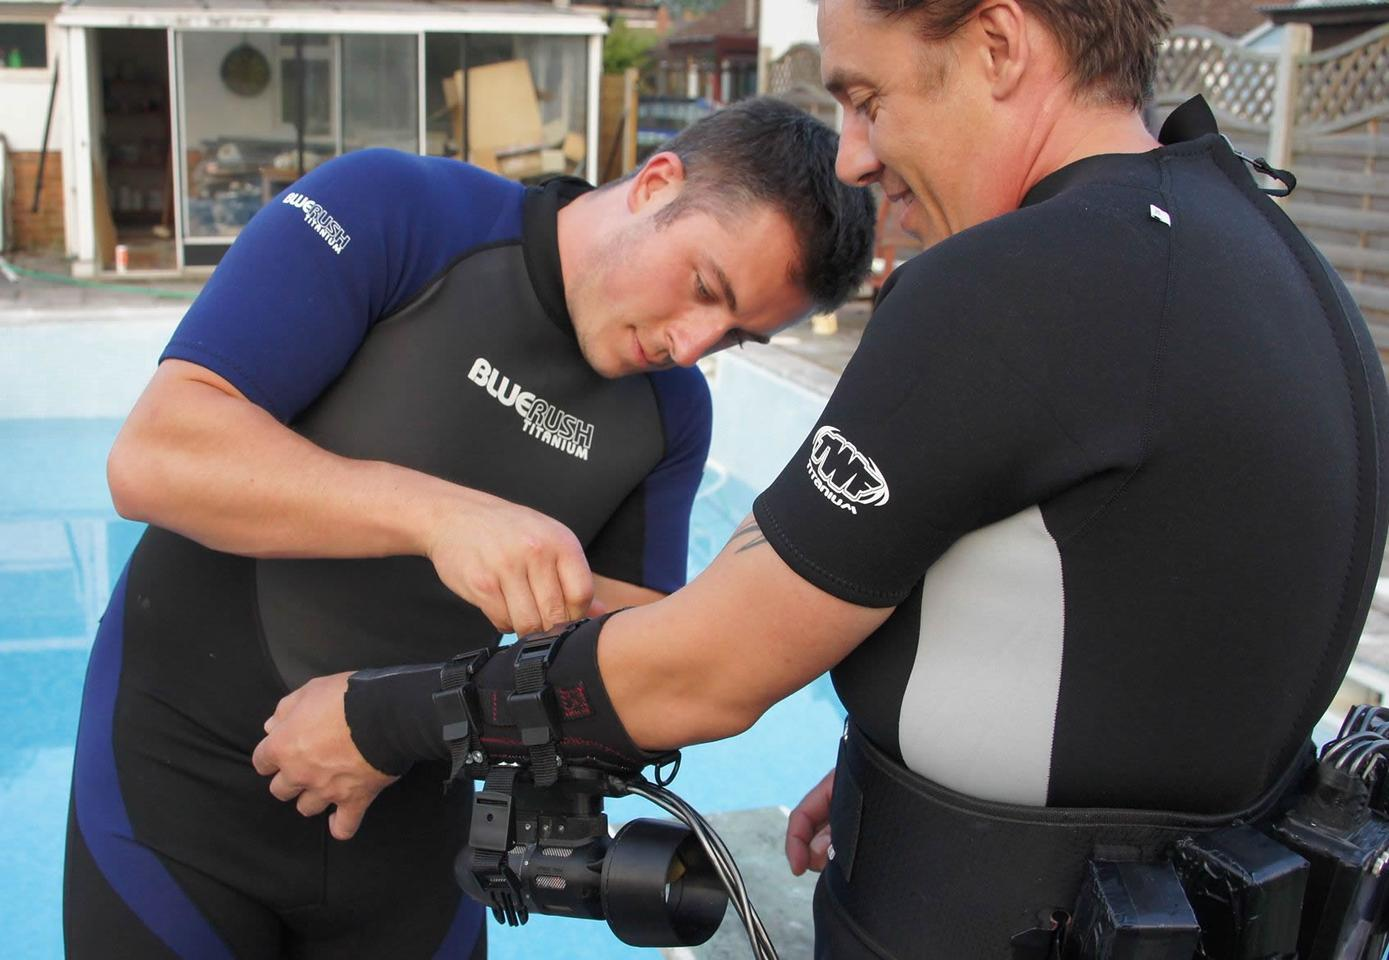 Fitting the Underwater Jet Pack prototype